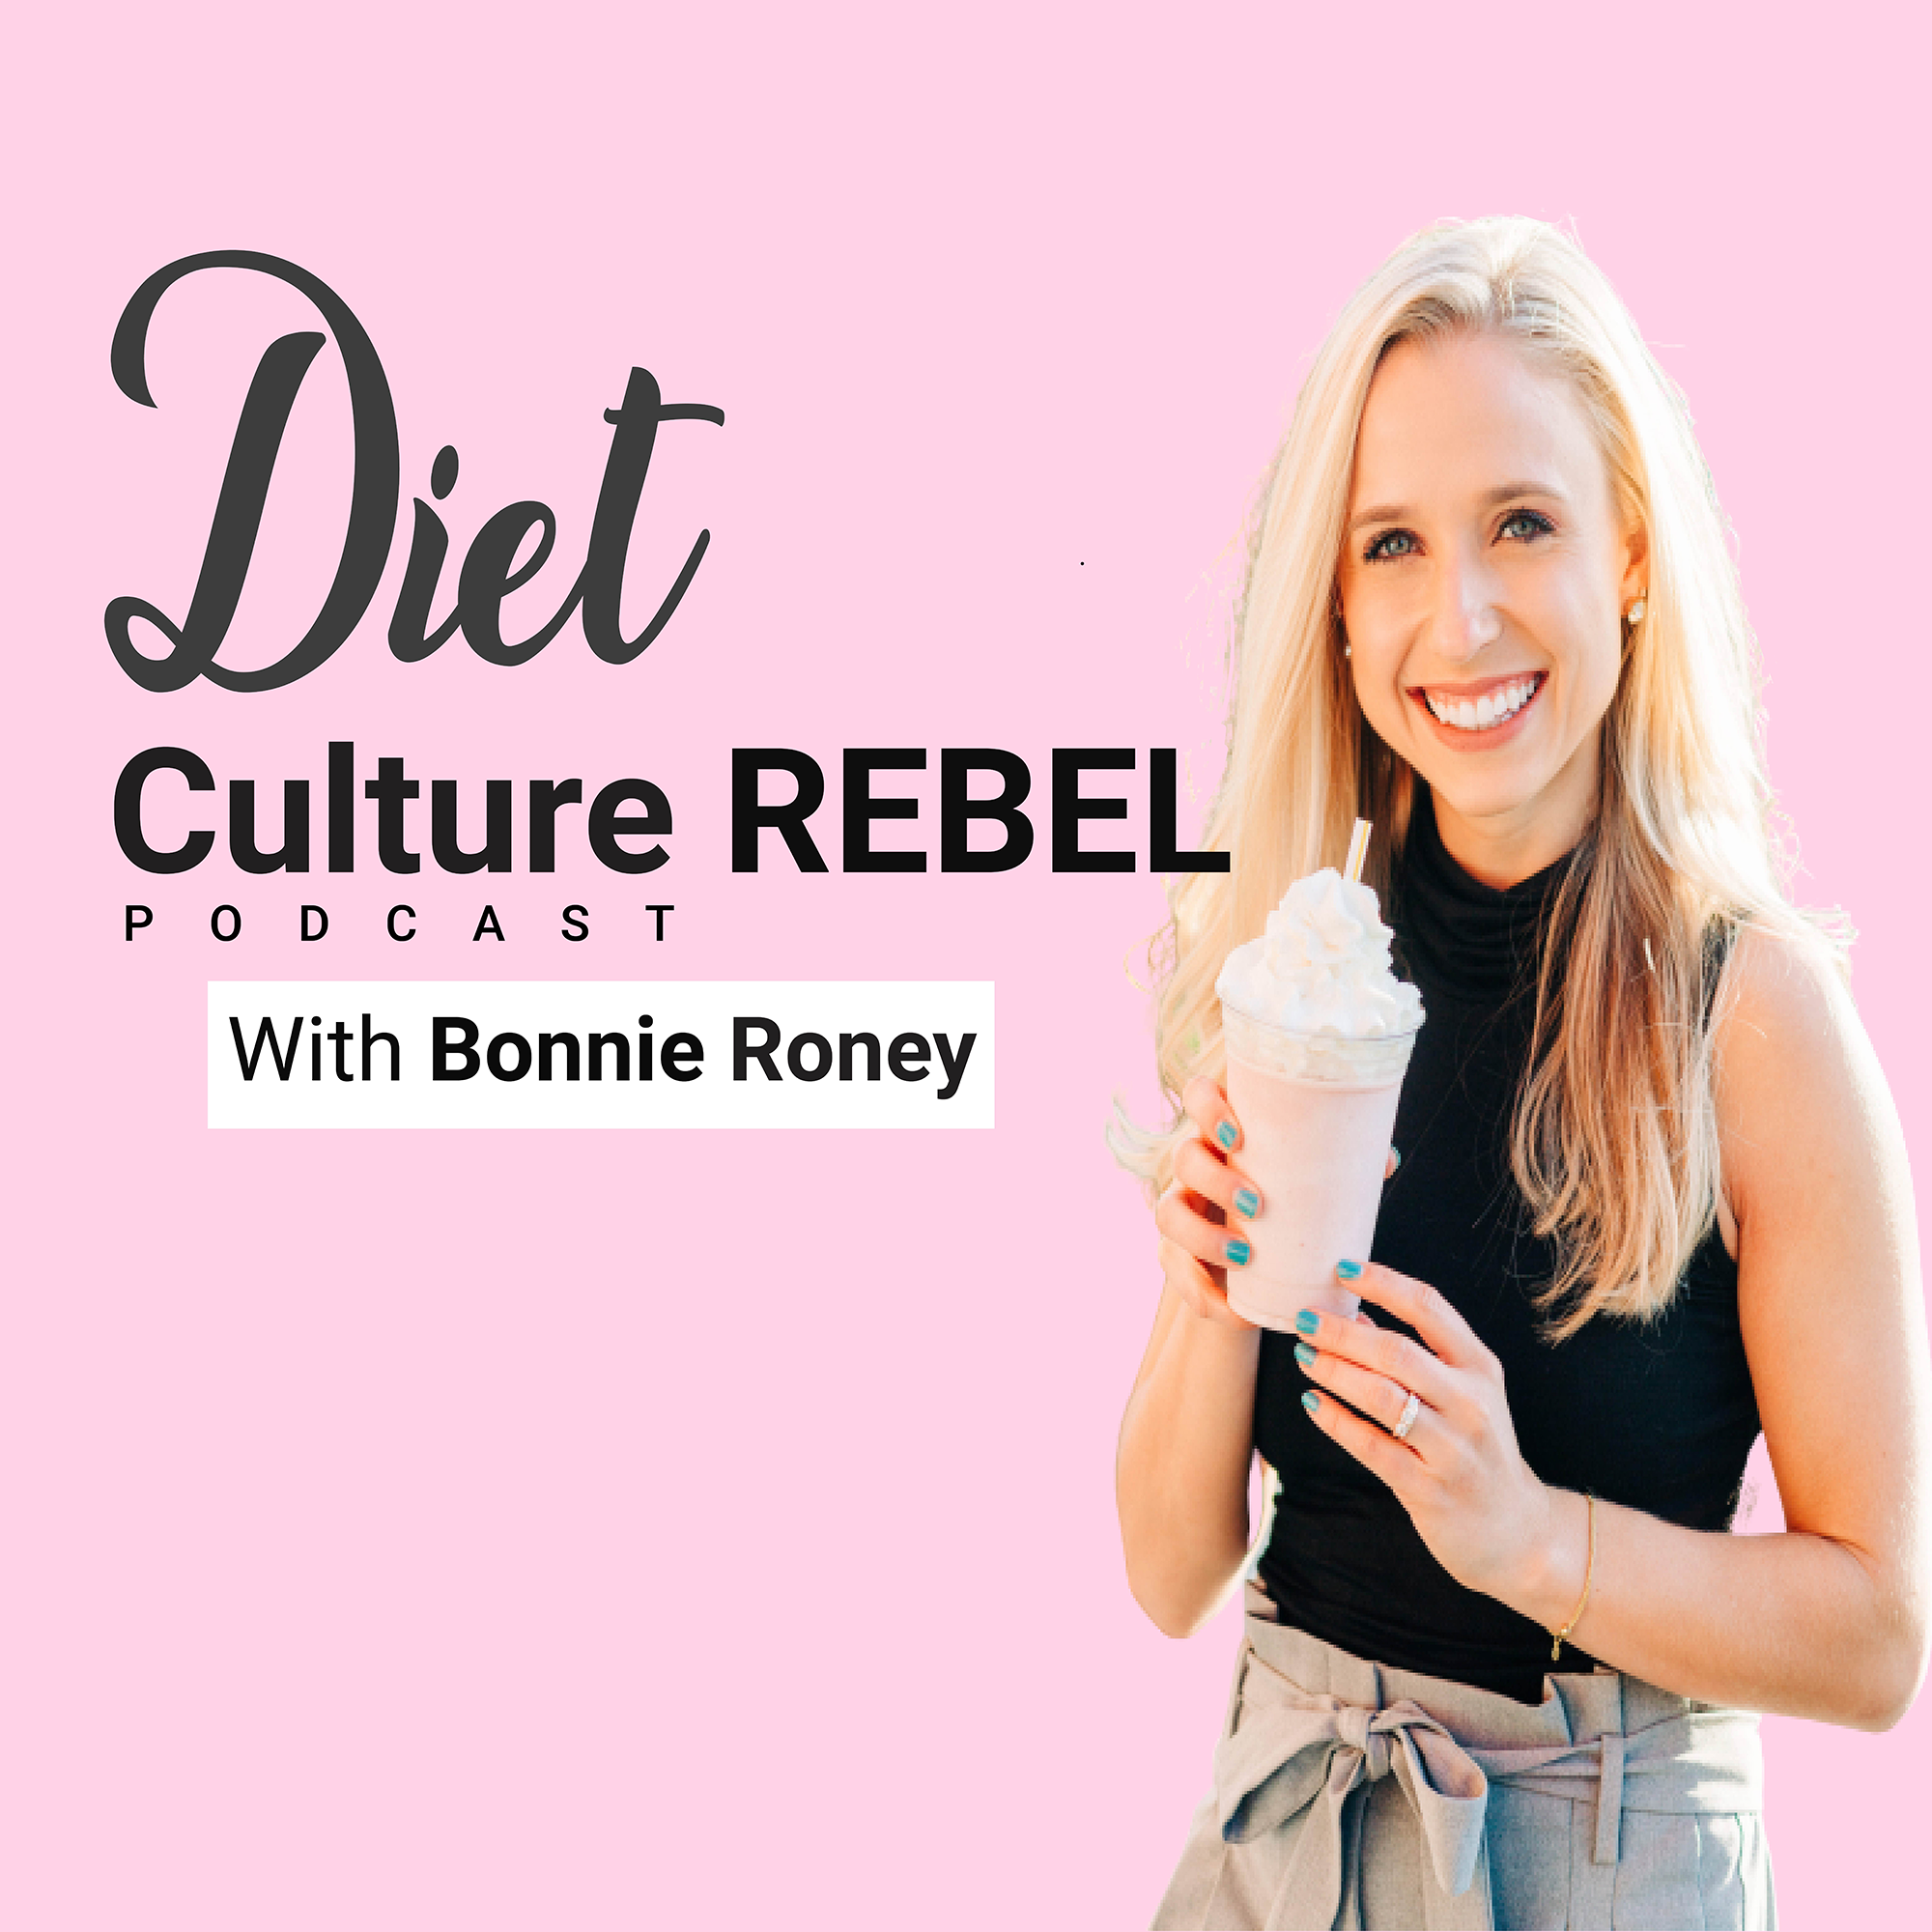 I read Intuitive Eating, why am I still binge eating?